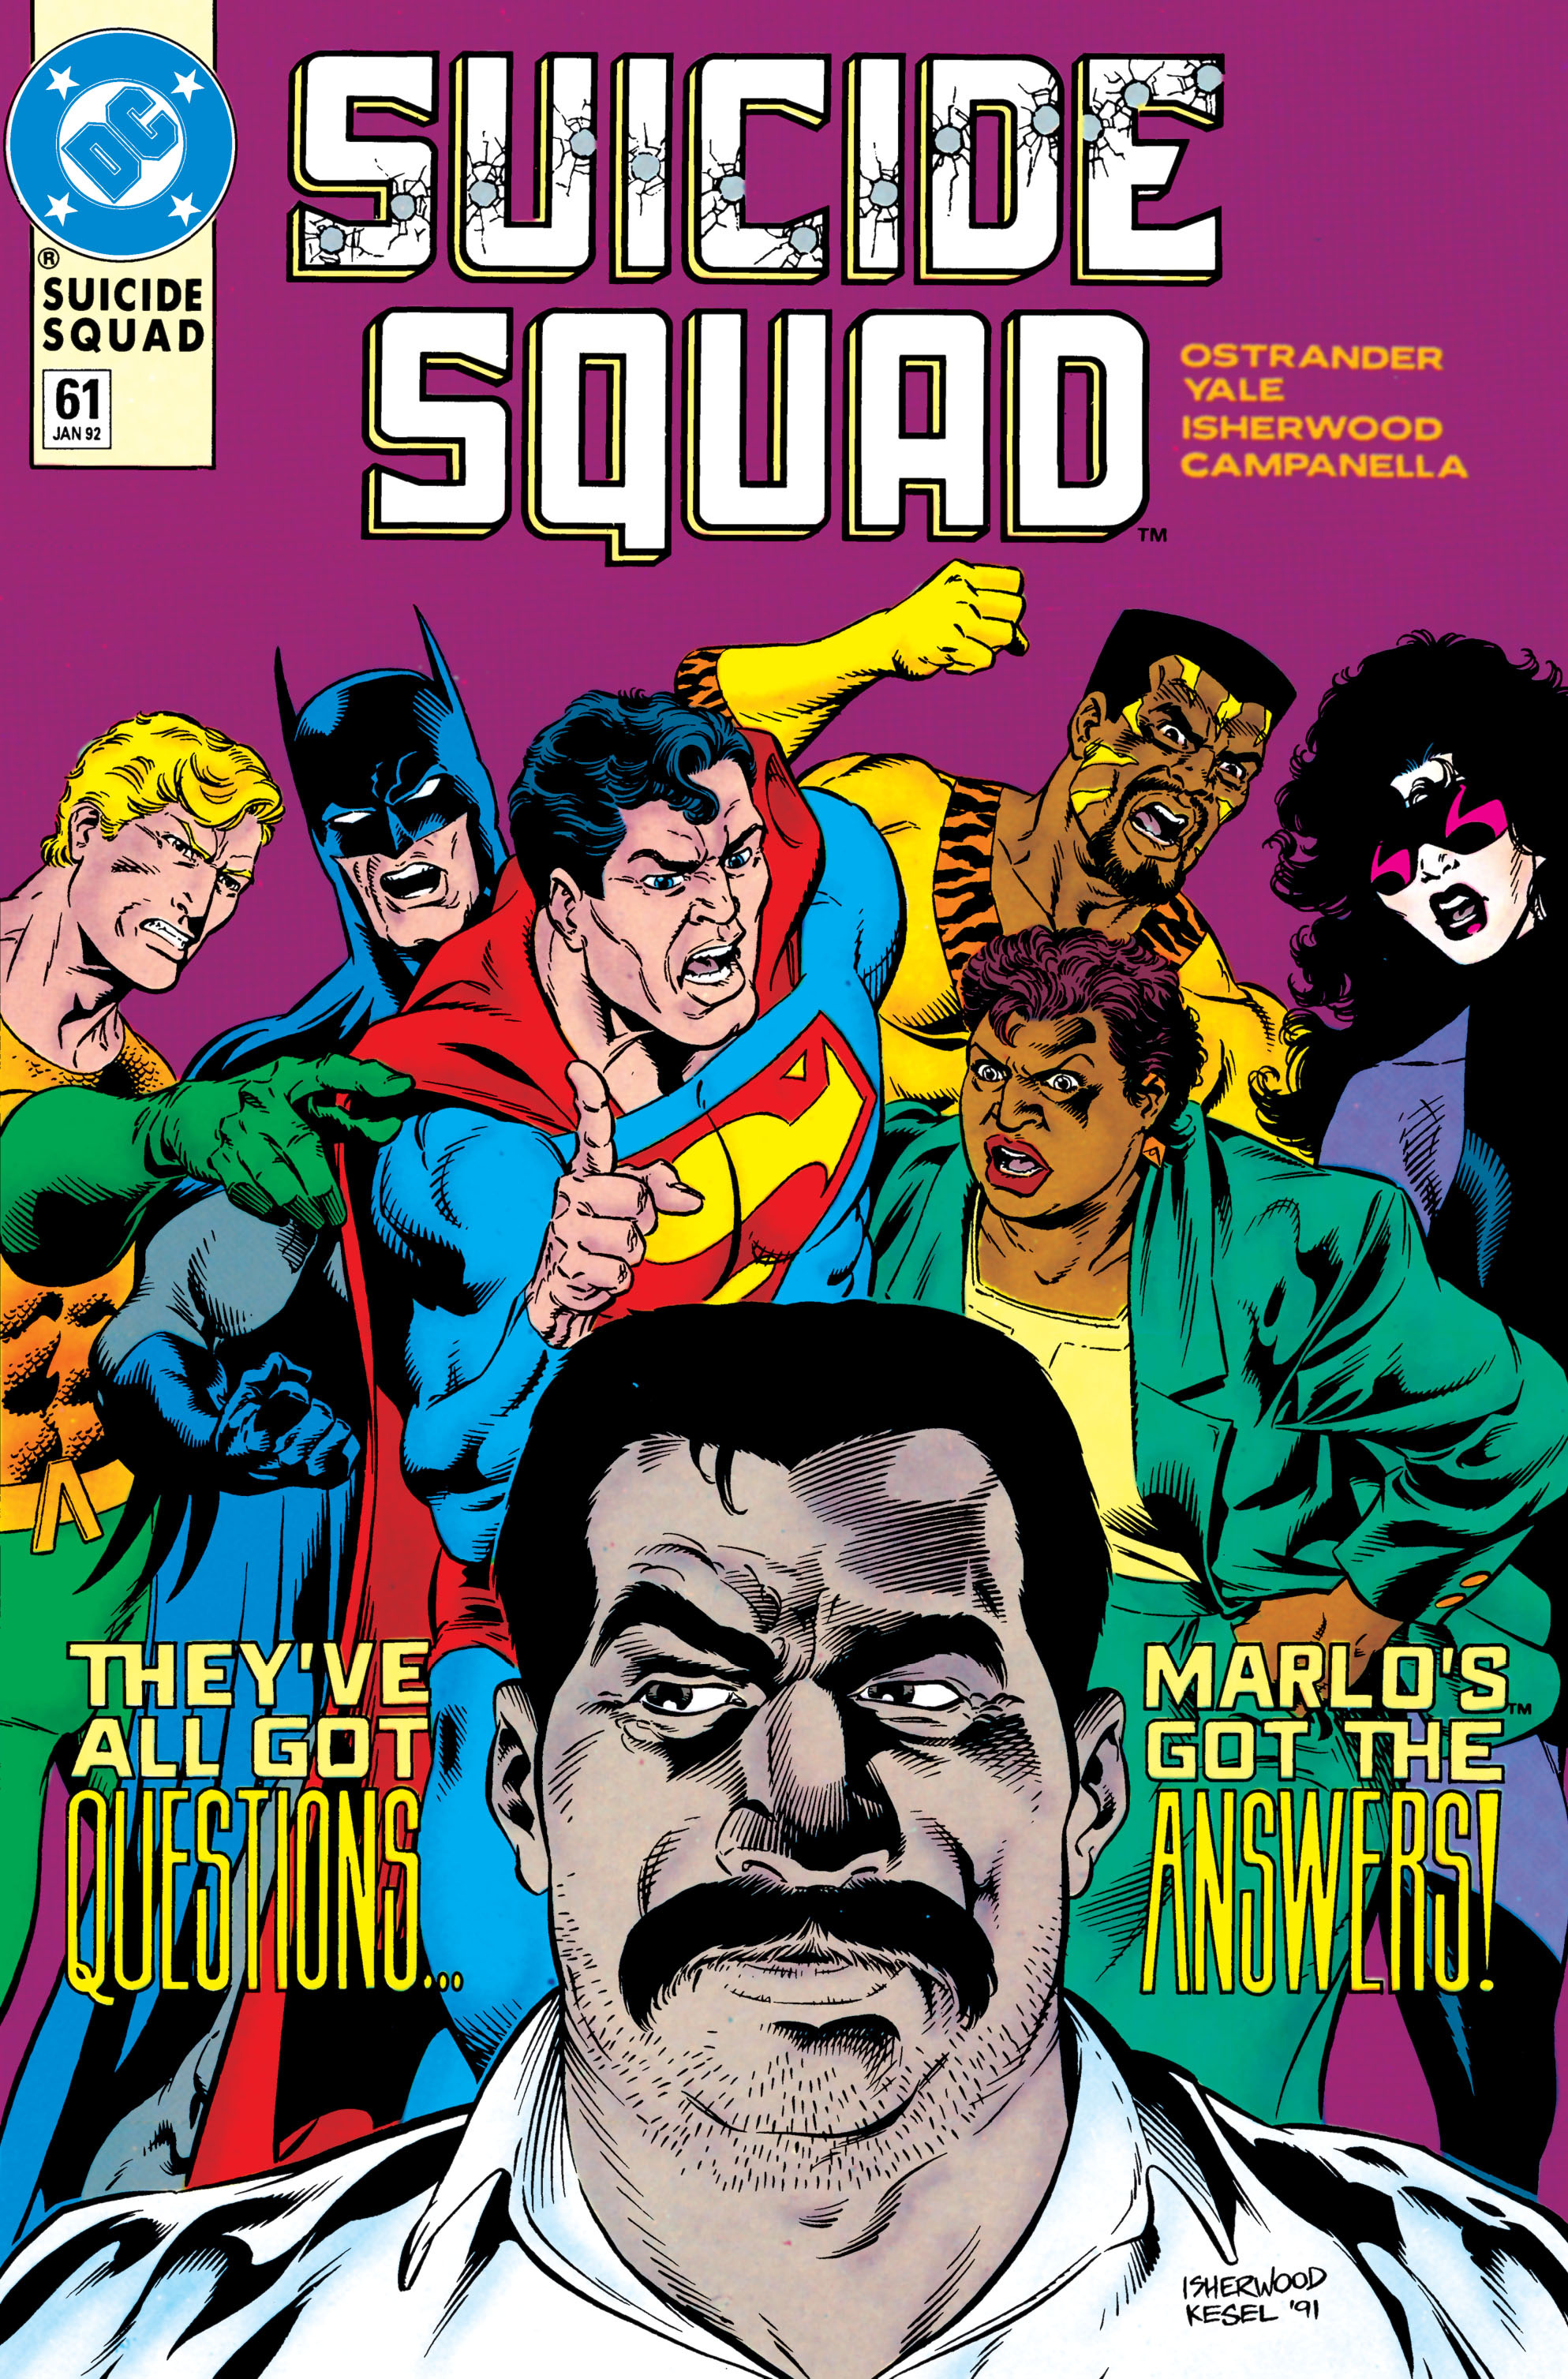 Suicide Squad (1987) issue 61 - Page 1